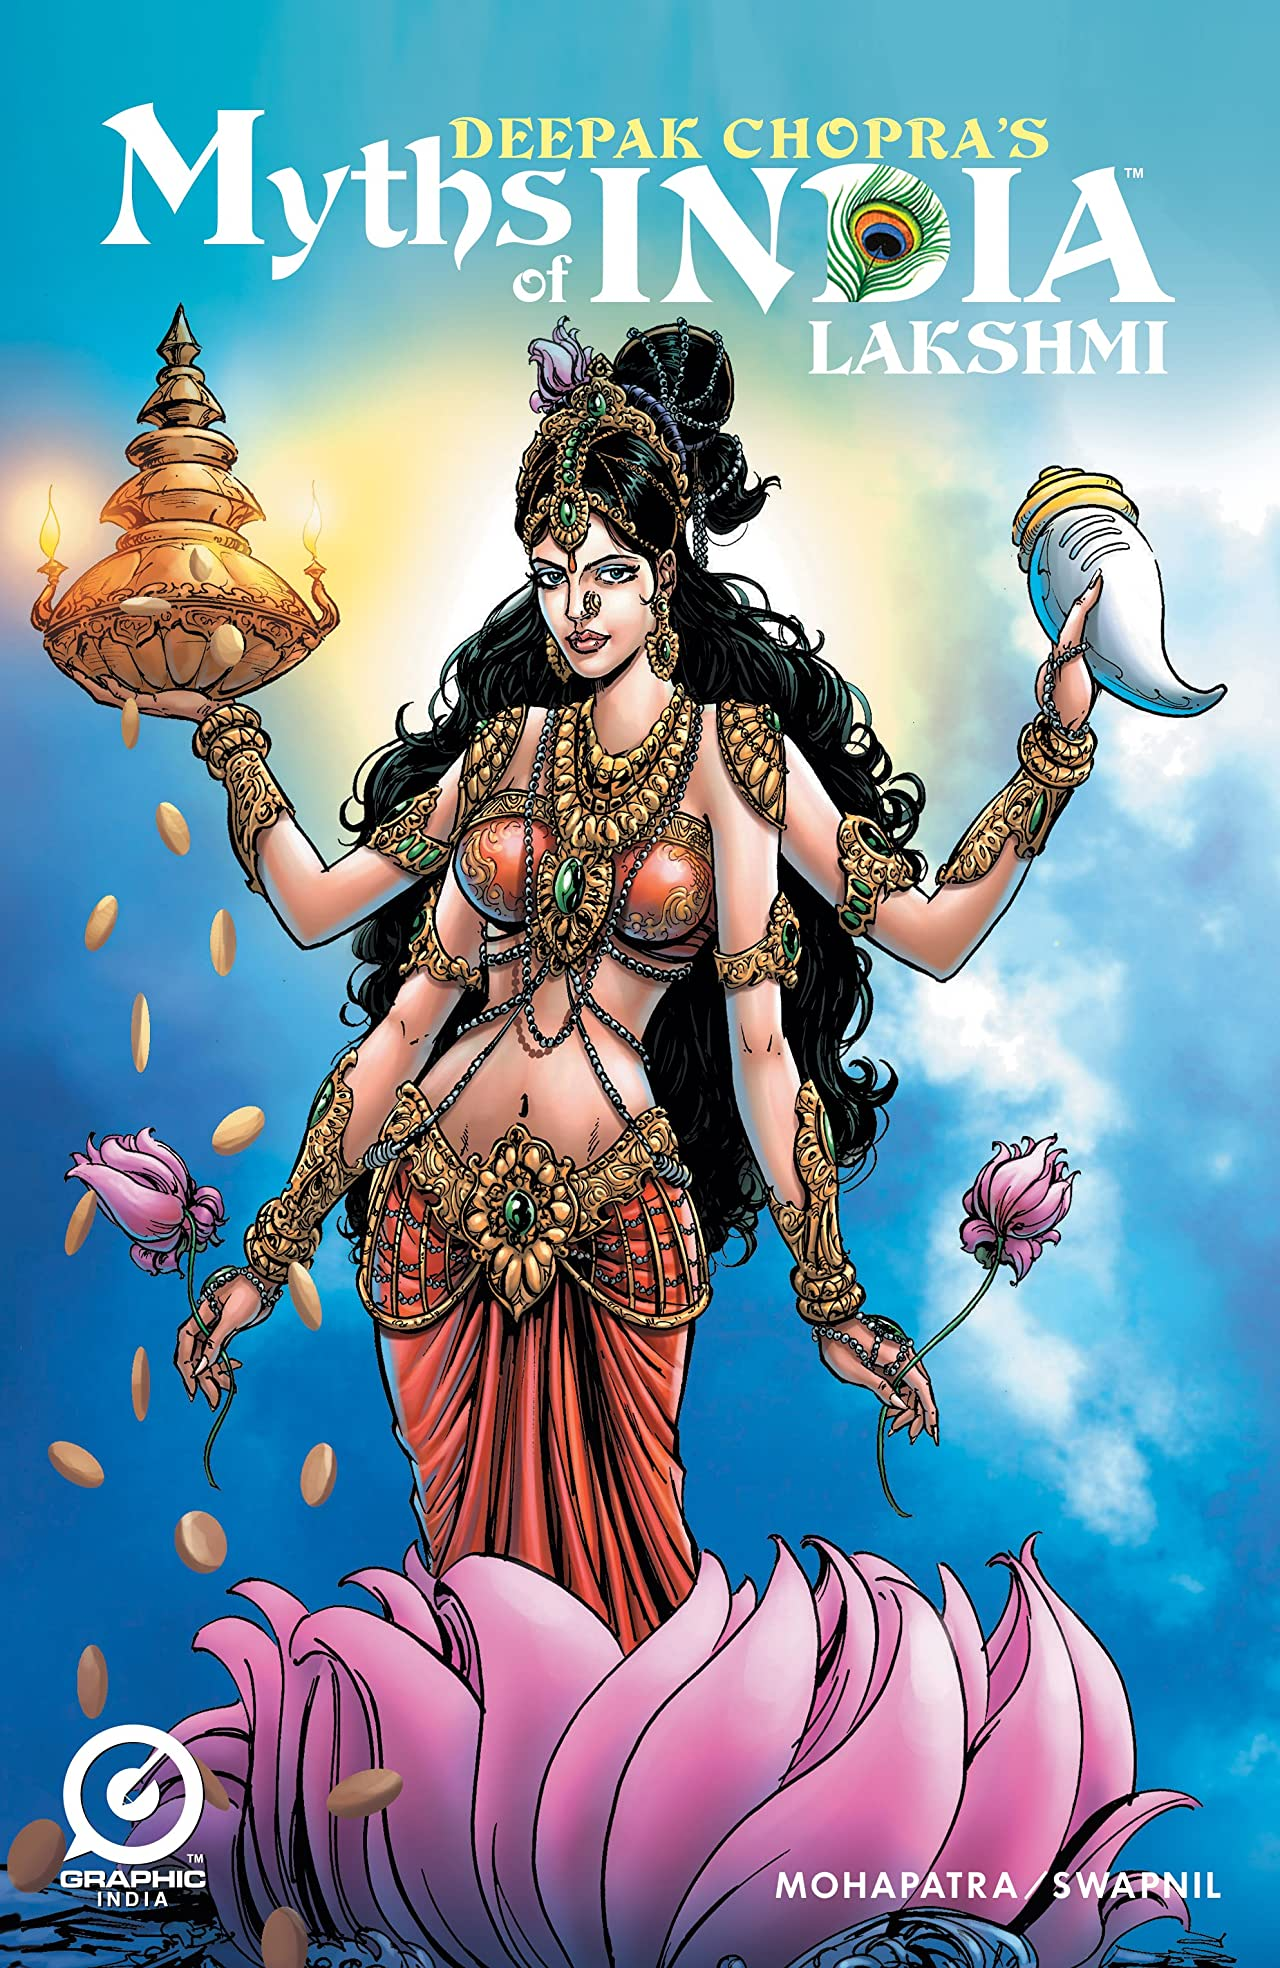 Myths of India: Lakshmi